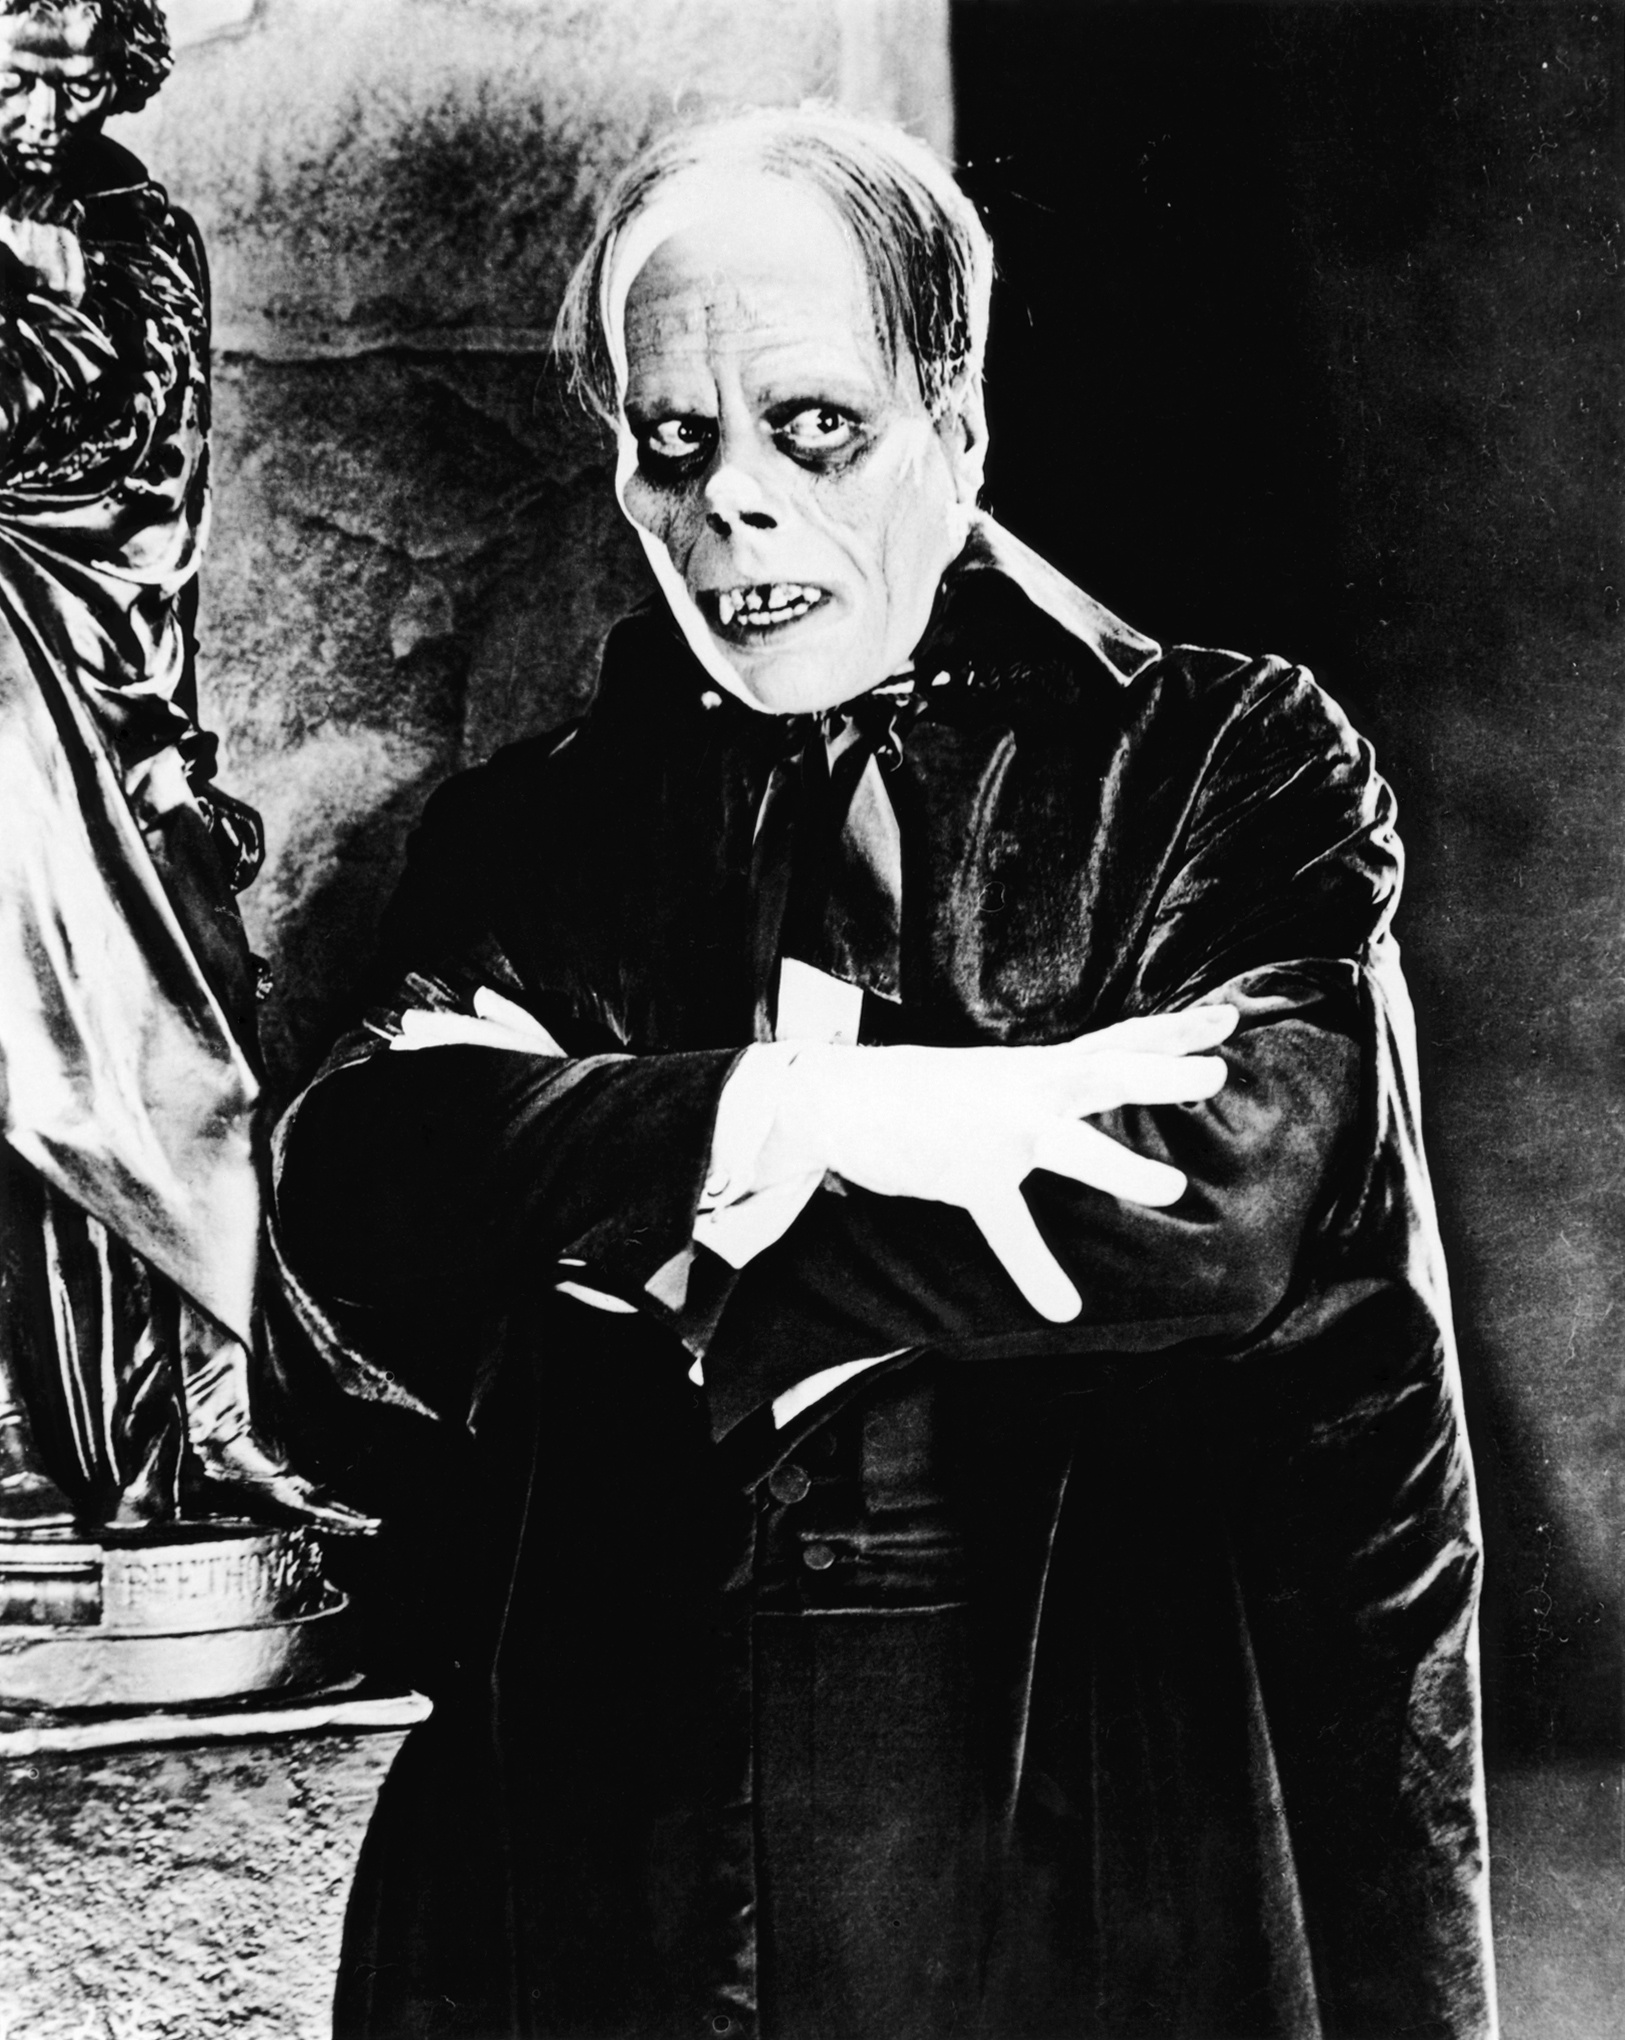 Scan of still of Lon Chaney in The Phantom of the Opera (1925)